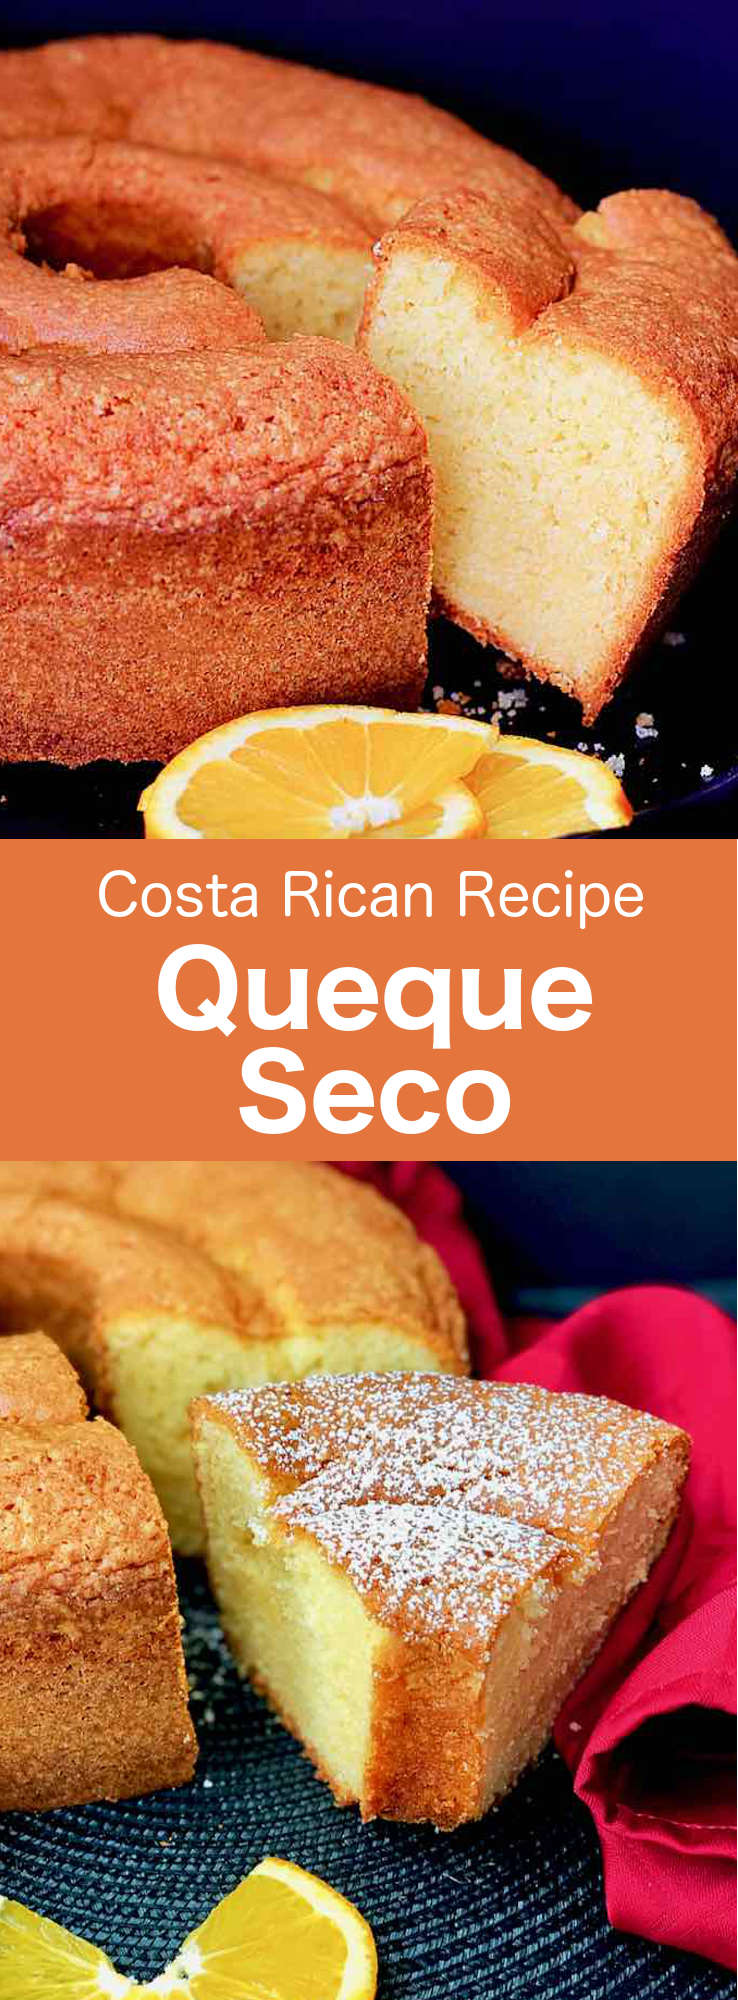 Queque seco is a delicious fluffy, orange-flavored cake that is popular in Costa Rica as well as many Latin American countries. #CostaRica #CostaRicanCuisine #CostaRicanFood #CostaRicanRecipe #WorldCuisine #196flavors